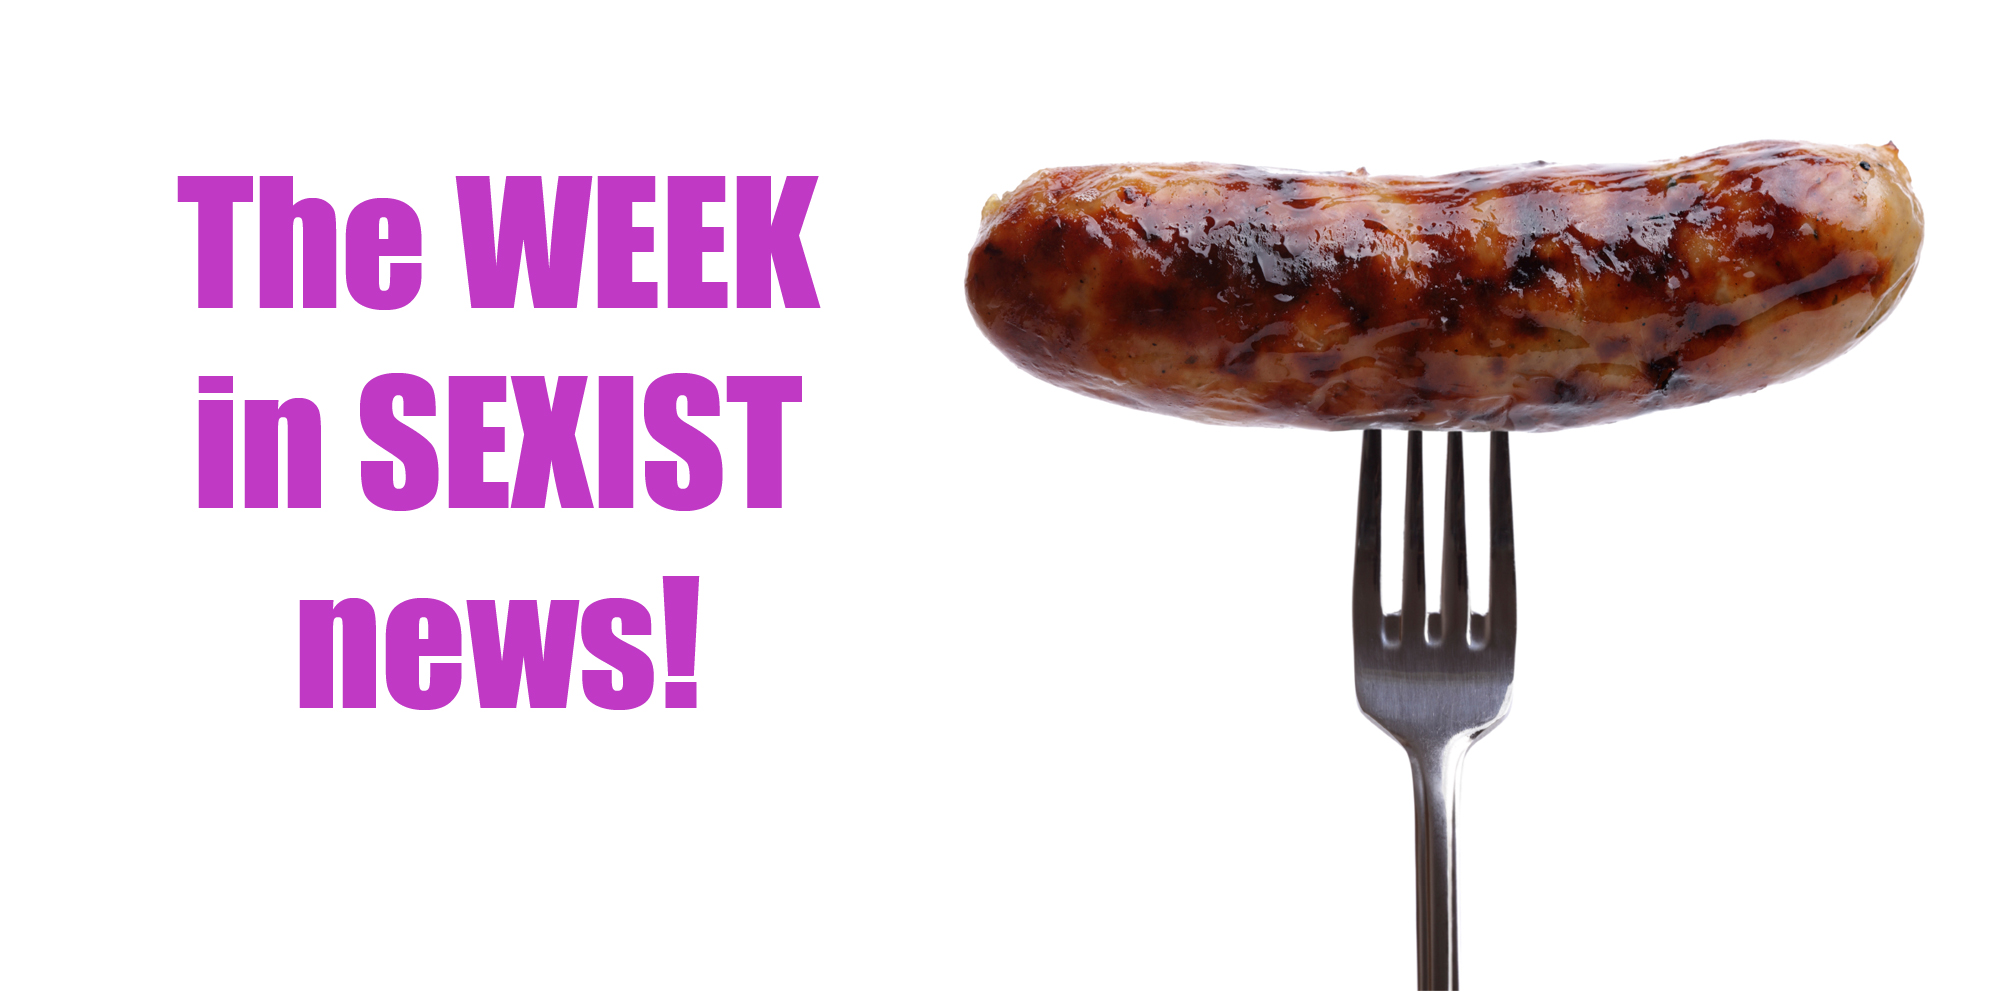 The Week in Sexist News 12/12/14